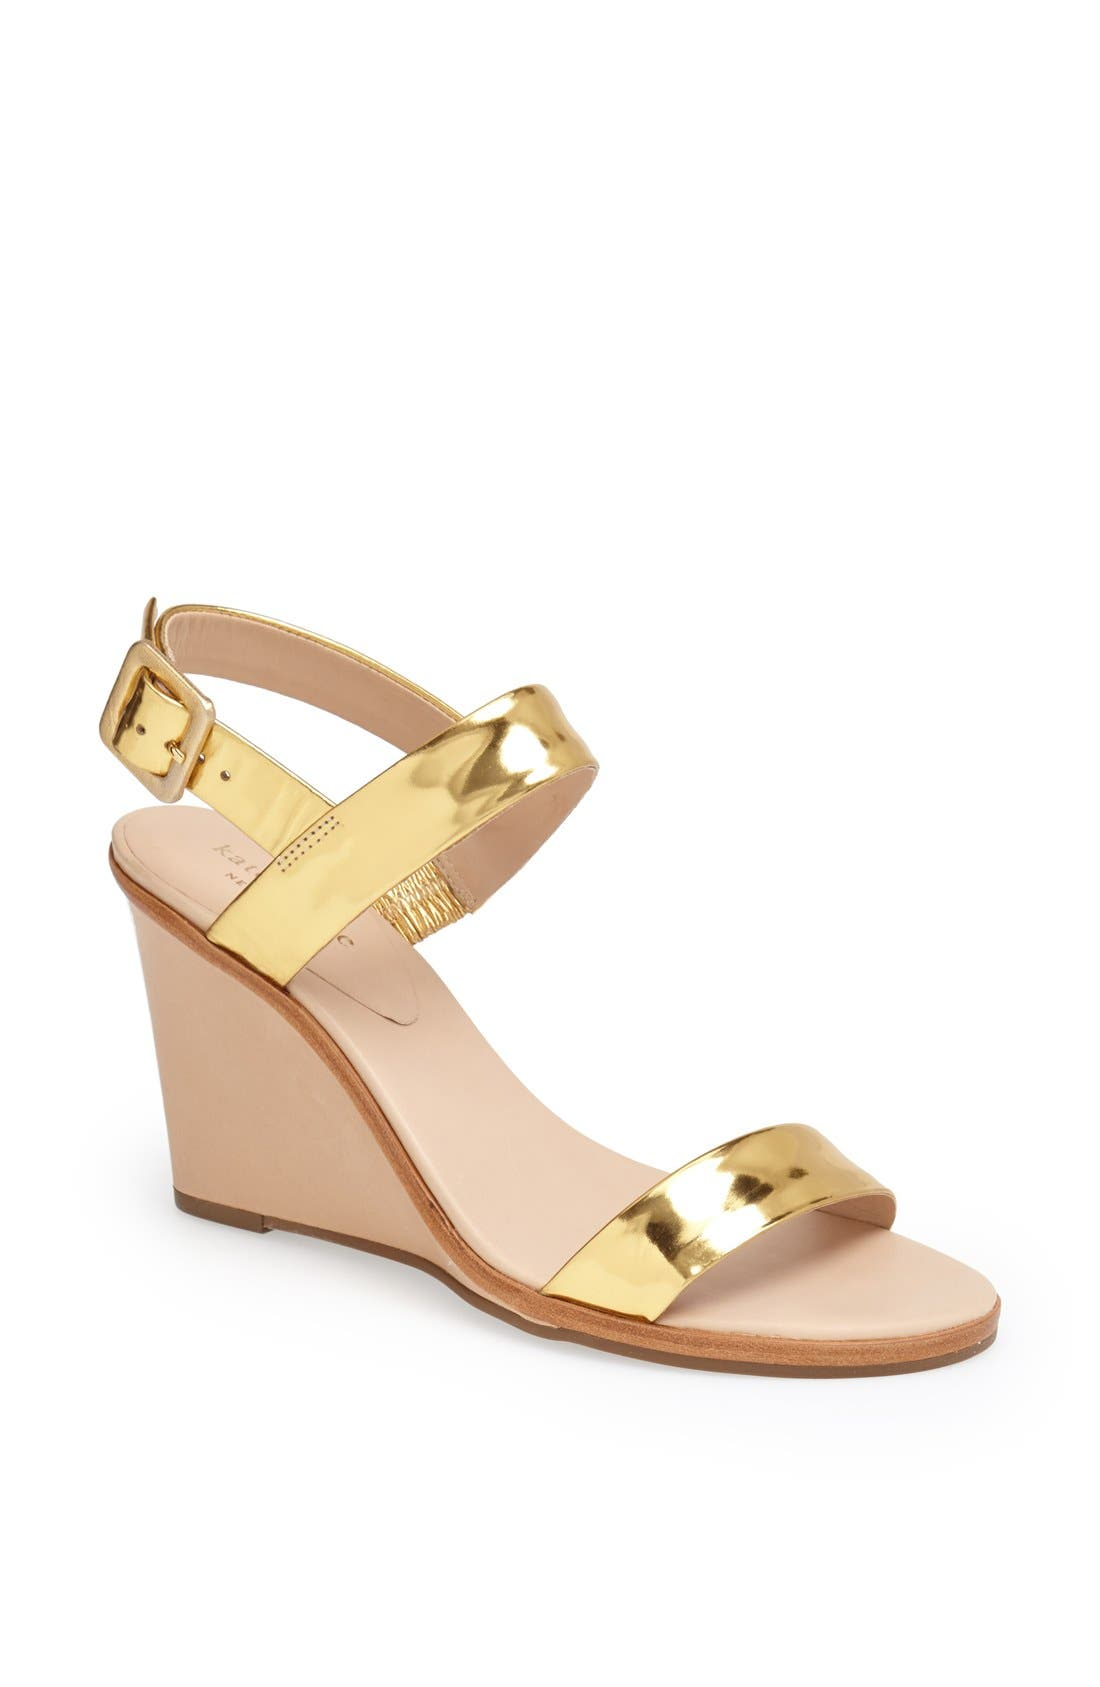 Main Image - kate spade new york 'nice' sandal (Women)